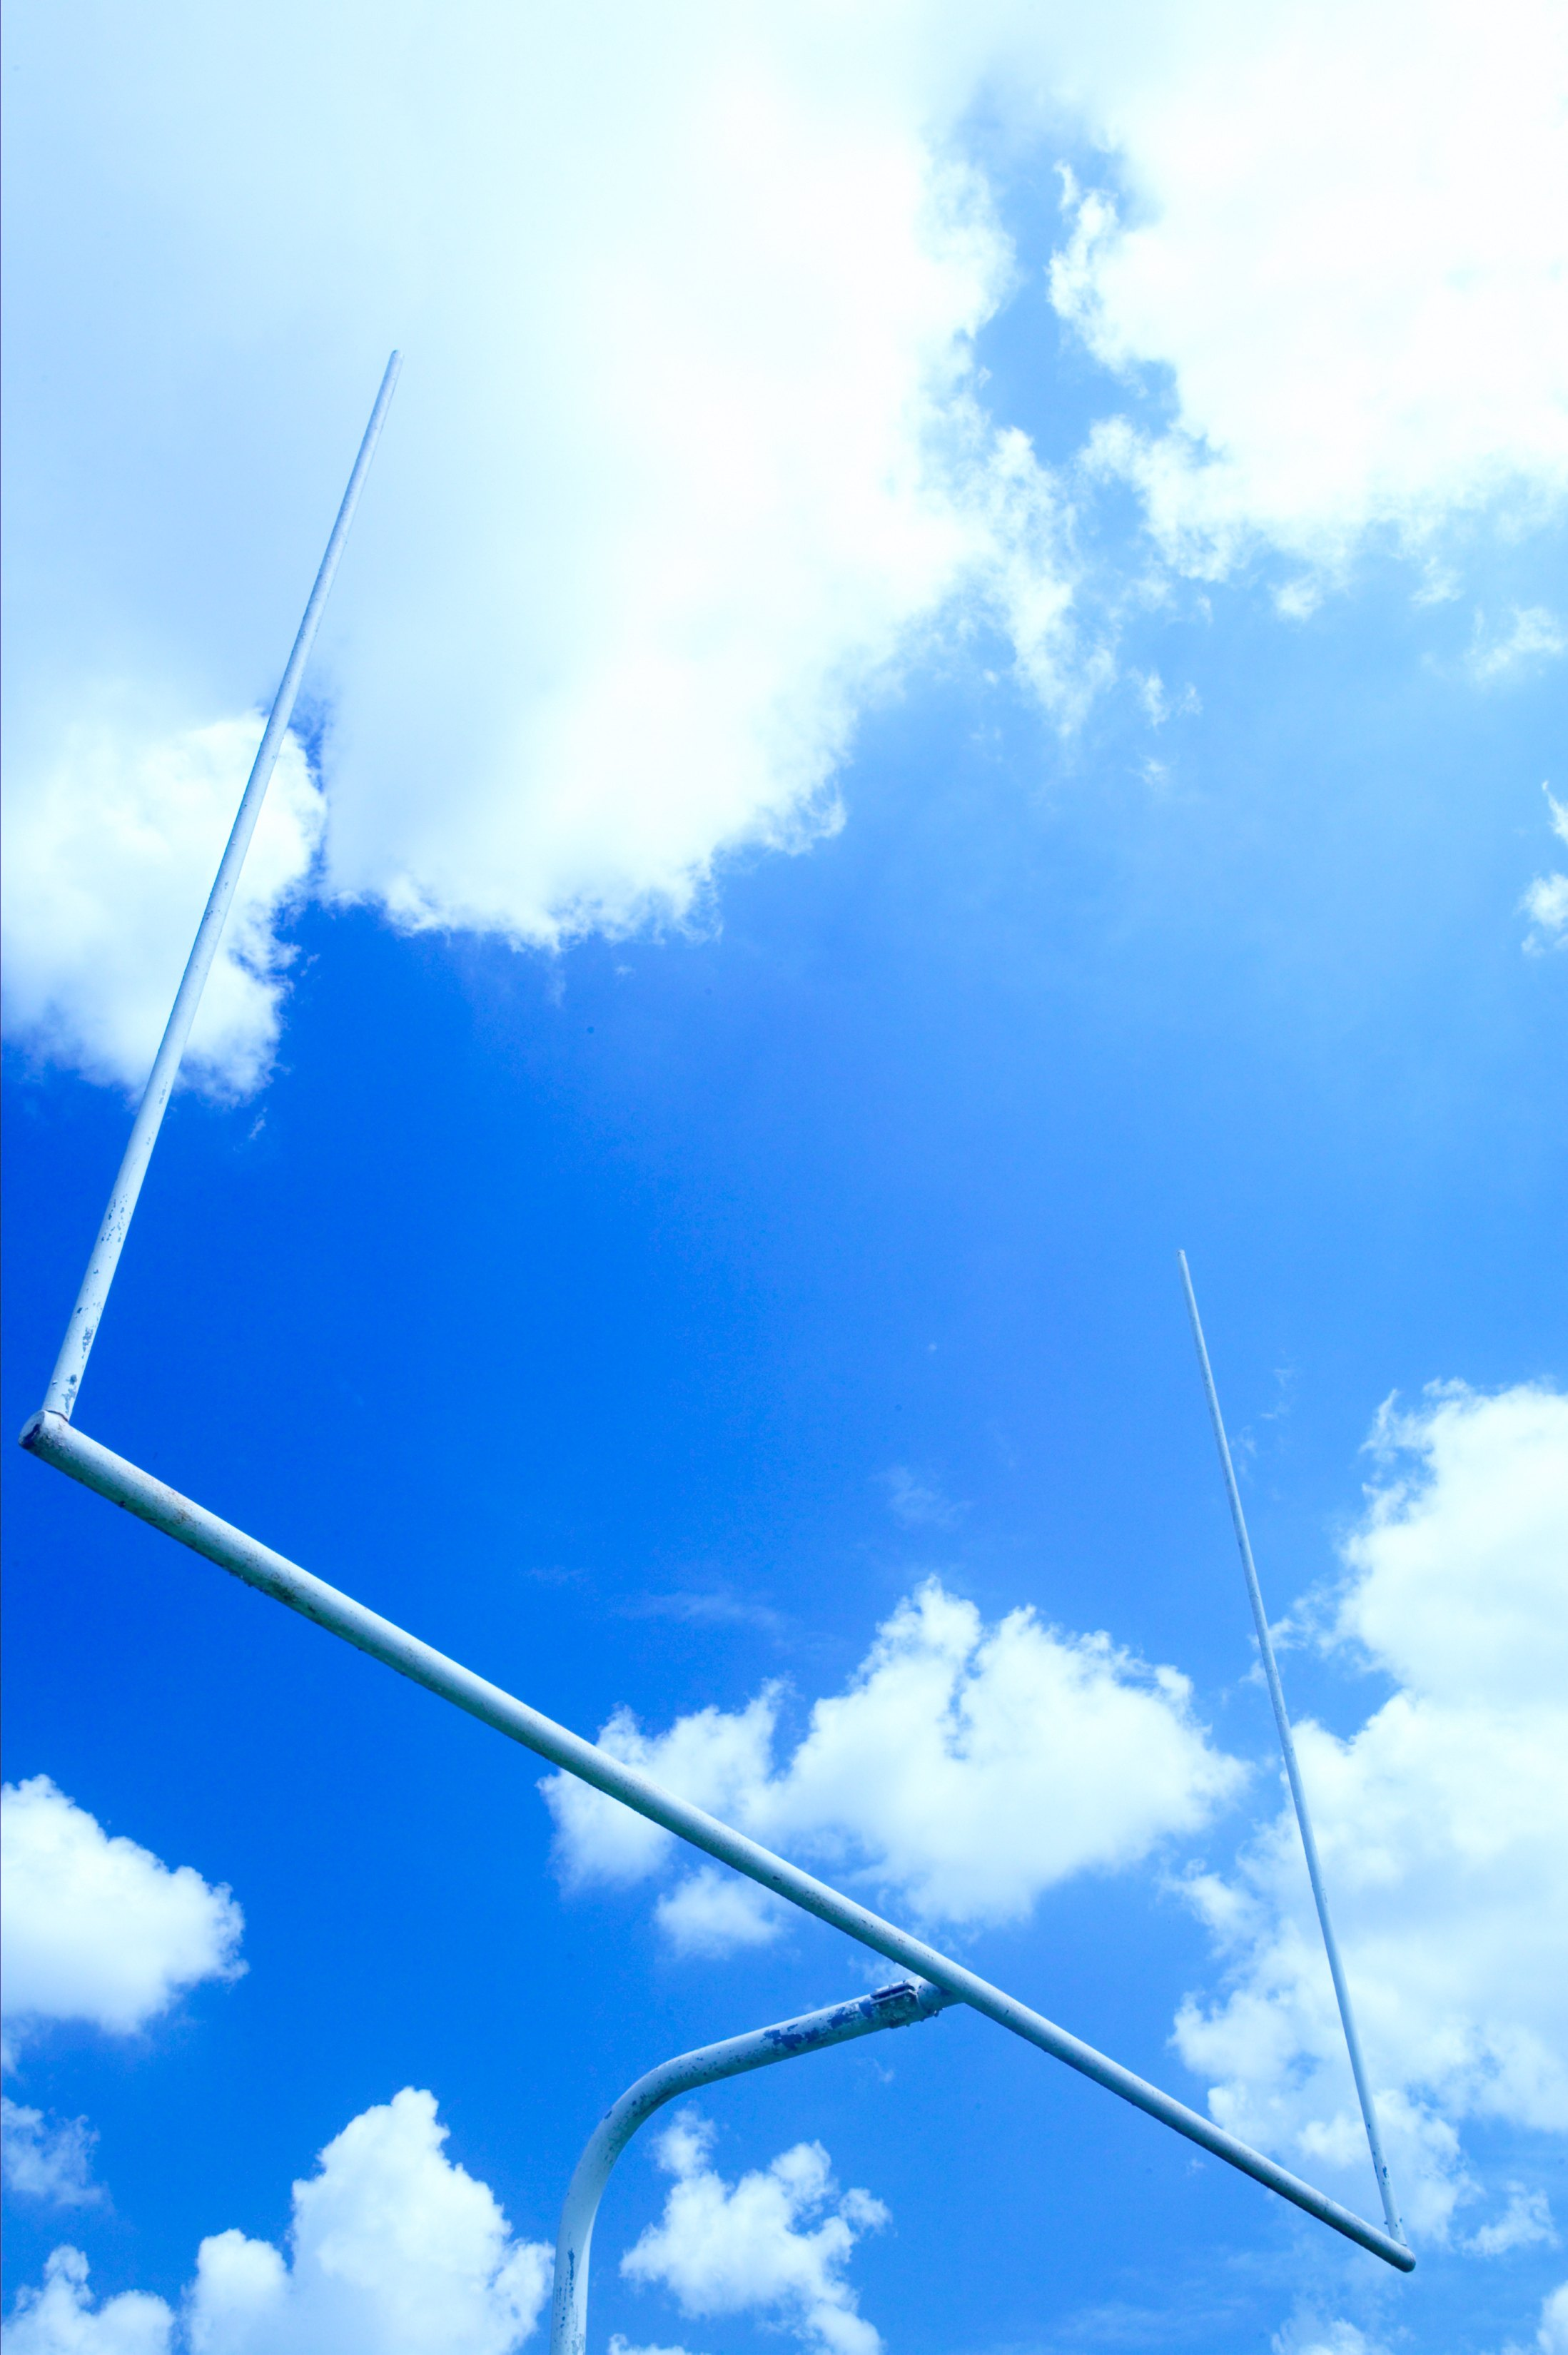 How to Make Field Goal Posts for Your Backyard | eHow